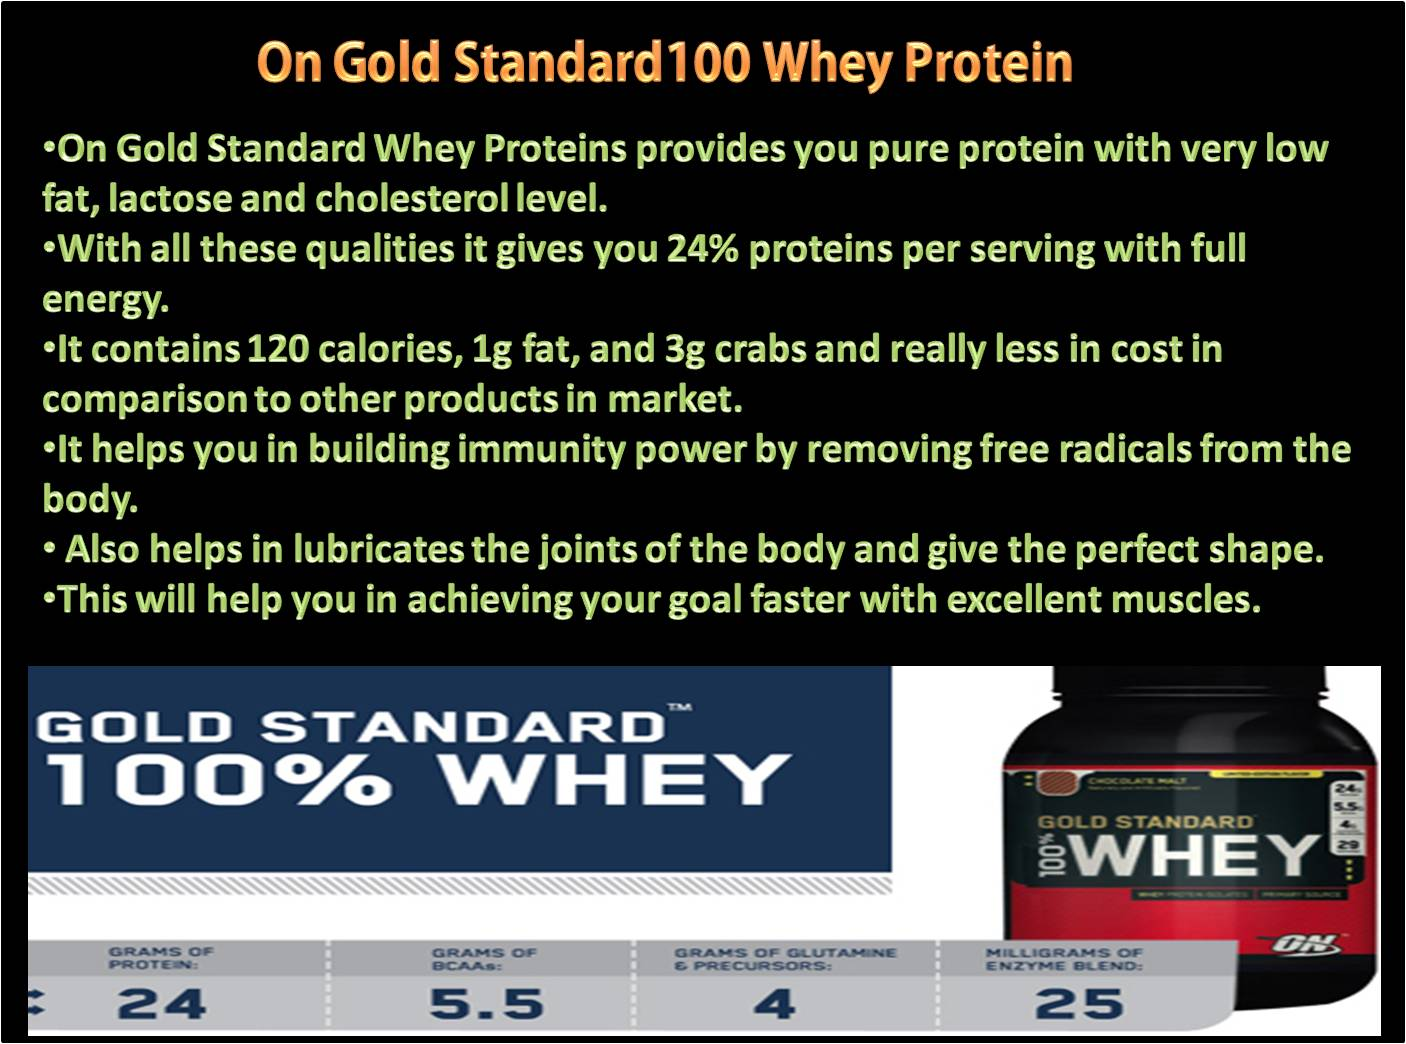 On gold standard proteins